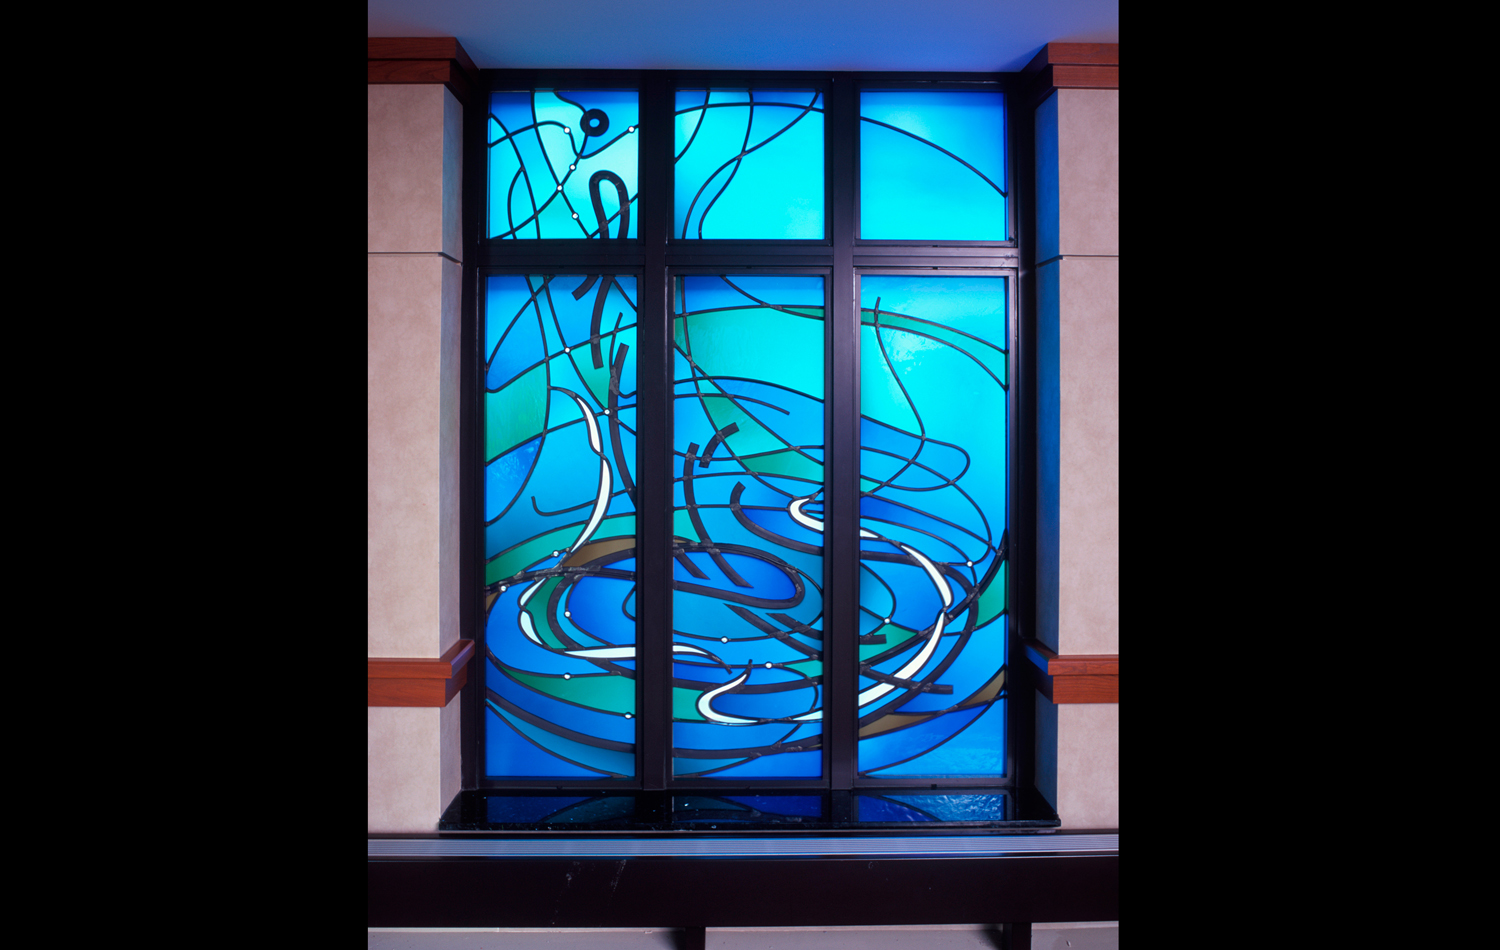 """""""Water"""" window: This window represents the concept of water, with all its connotations of abundance, cleansing, flood, and rebirth. As these ideas guided the rhythm and flow of the design, a single water drop emerged. It communicates that we may be one drop in the sea of life, but that God treasures us as a most precious individual, selectively nurturing us in our time of need."""